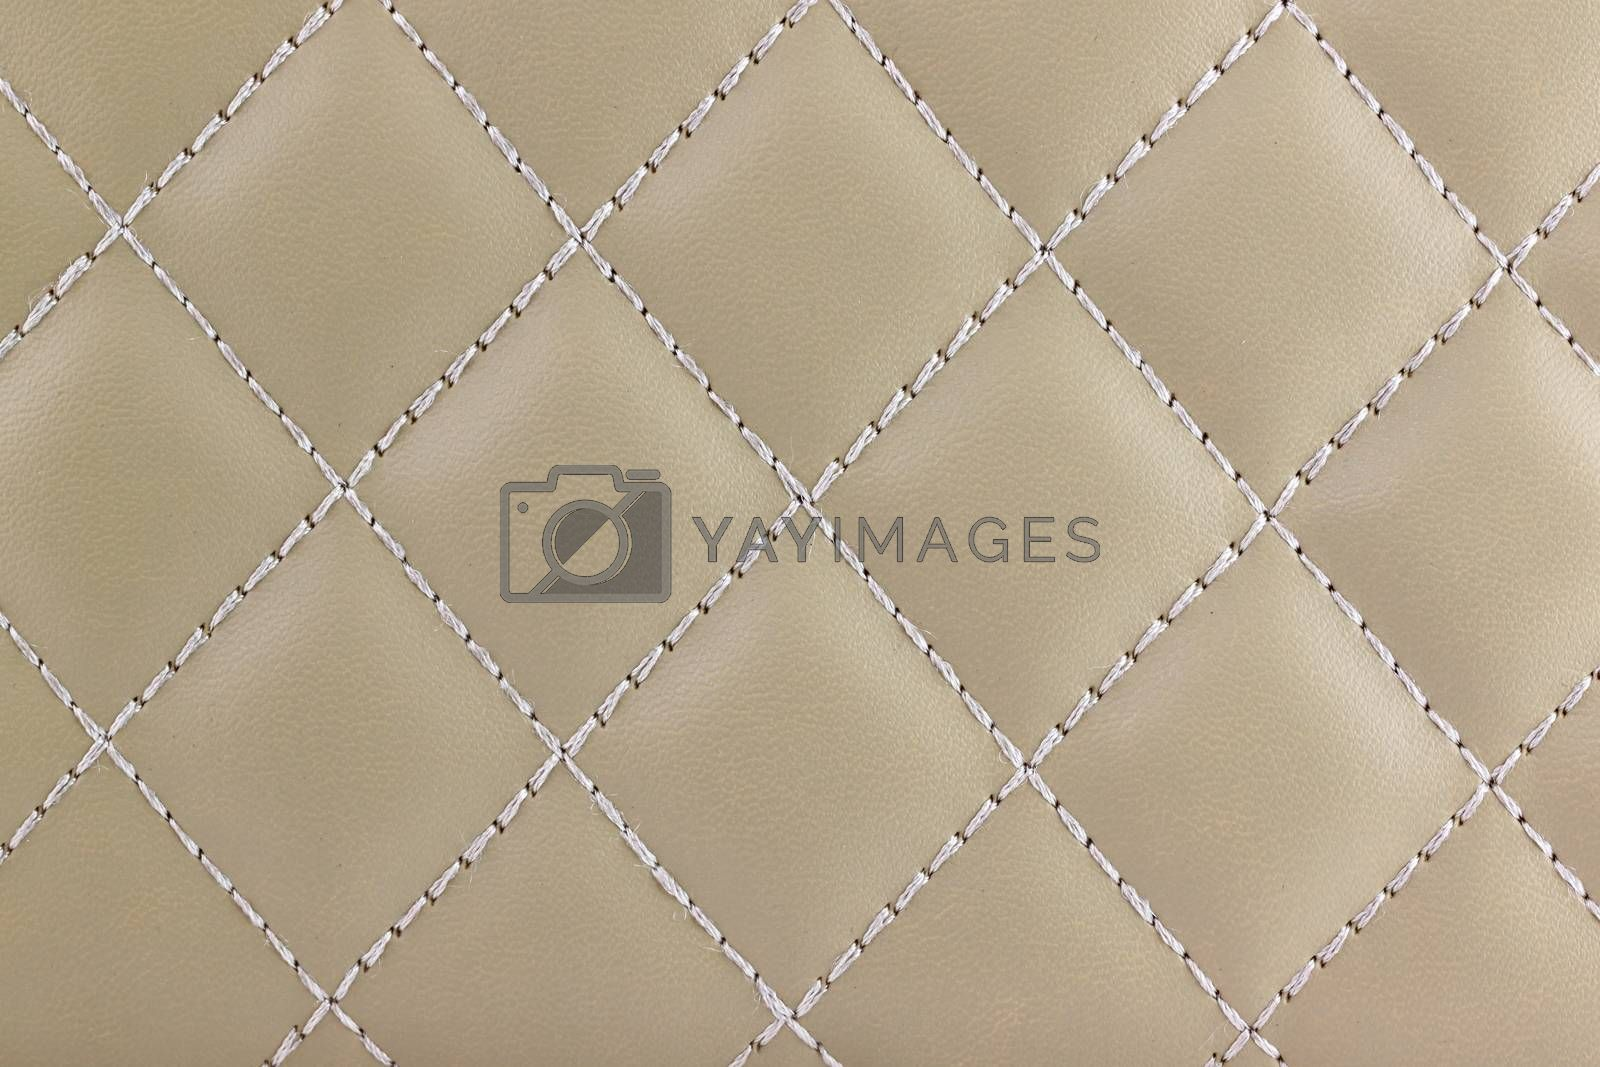 Textured and pattern of  light brown leather for the background.